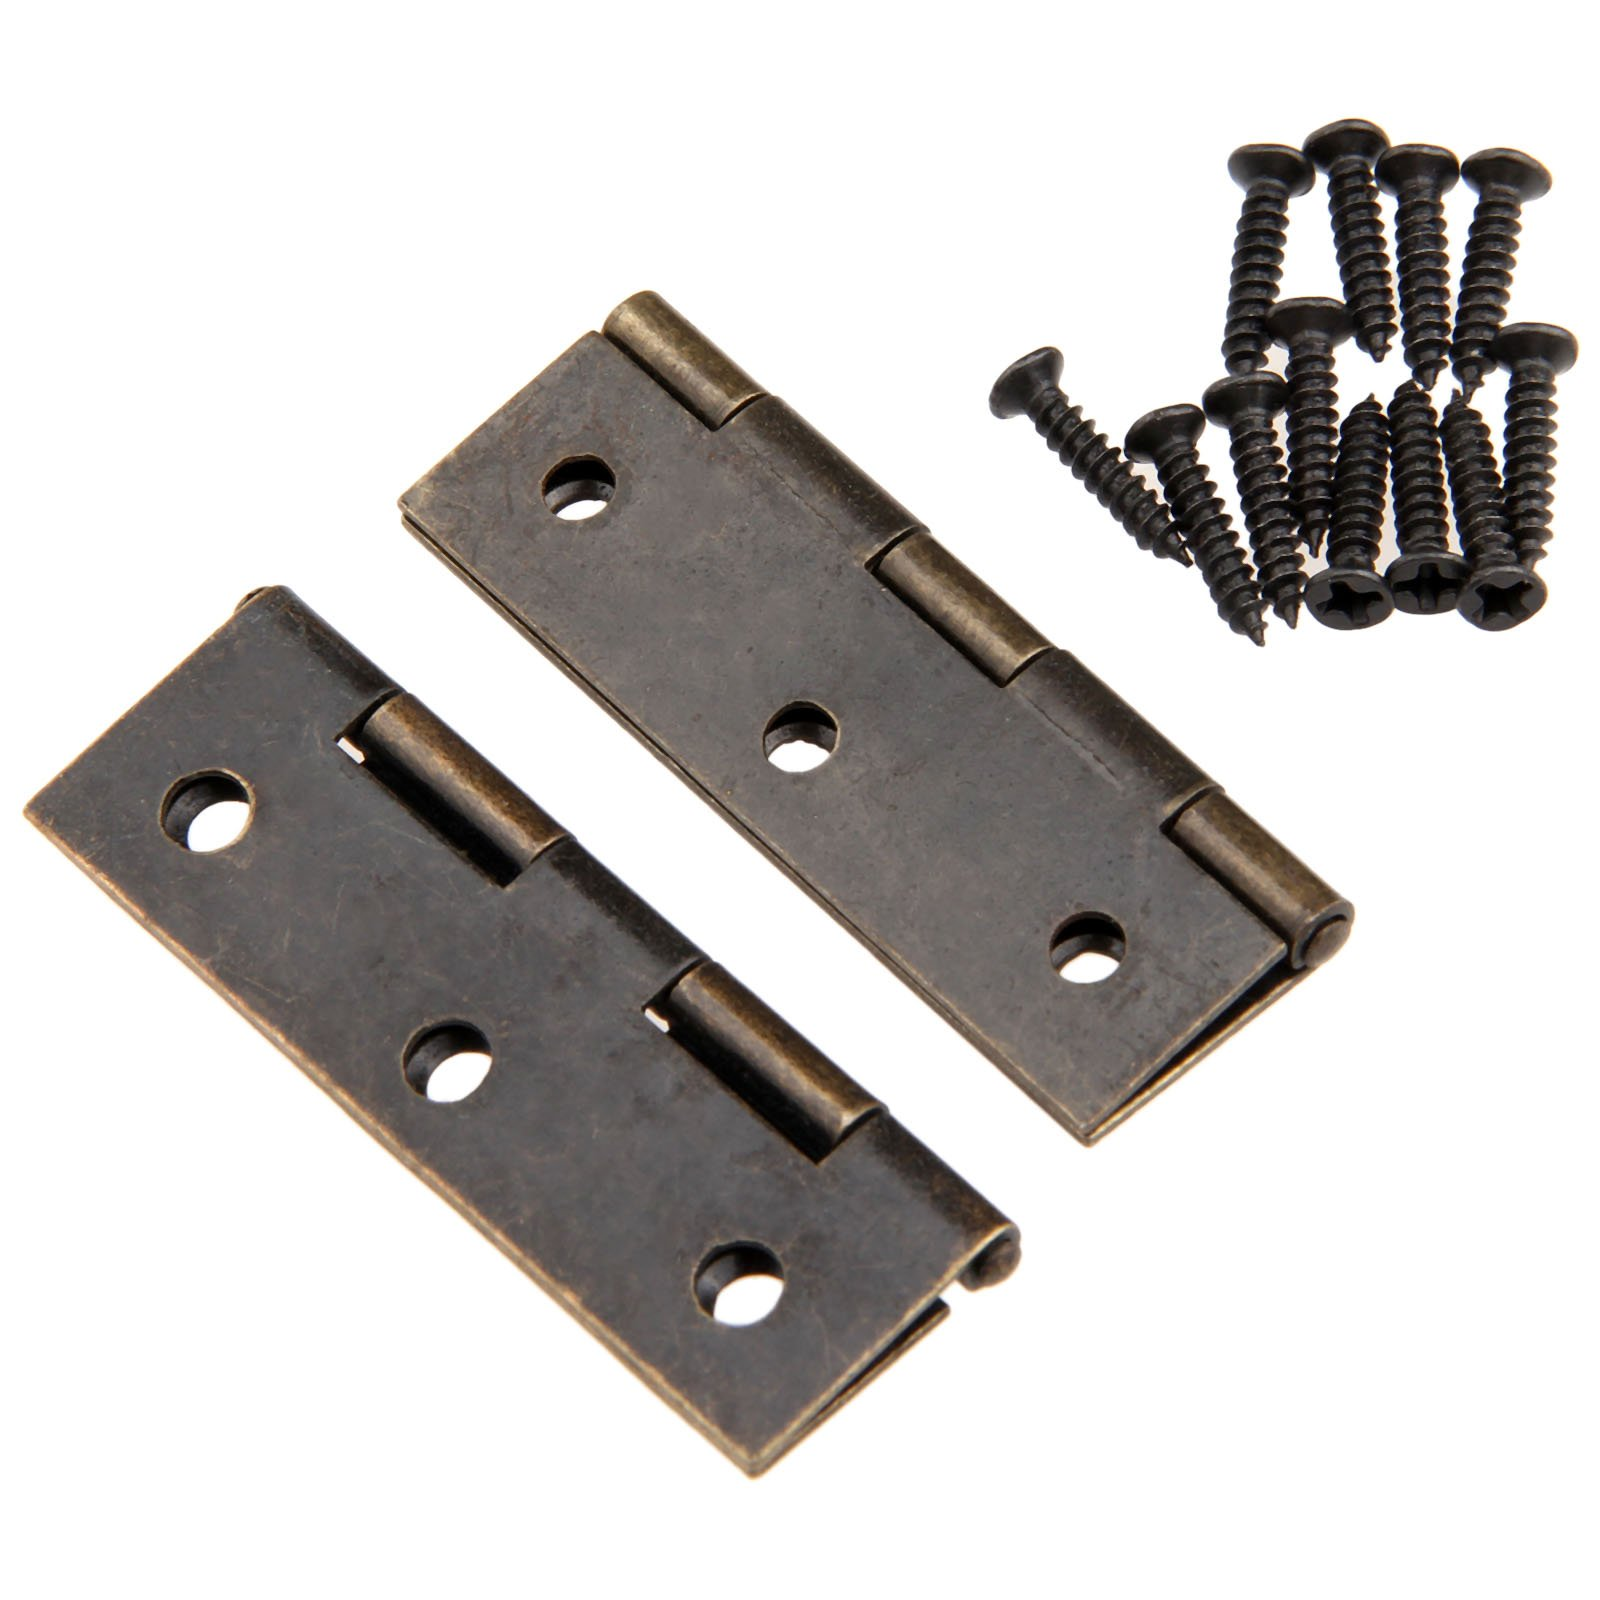 Dophee 10Pcs 60x37mm Antique Brass Mini Hinges Cabinet Drawer Wood Box Chest Decorative Hinges